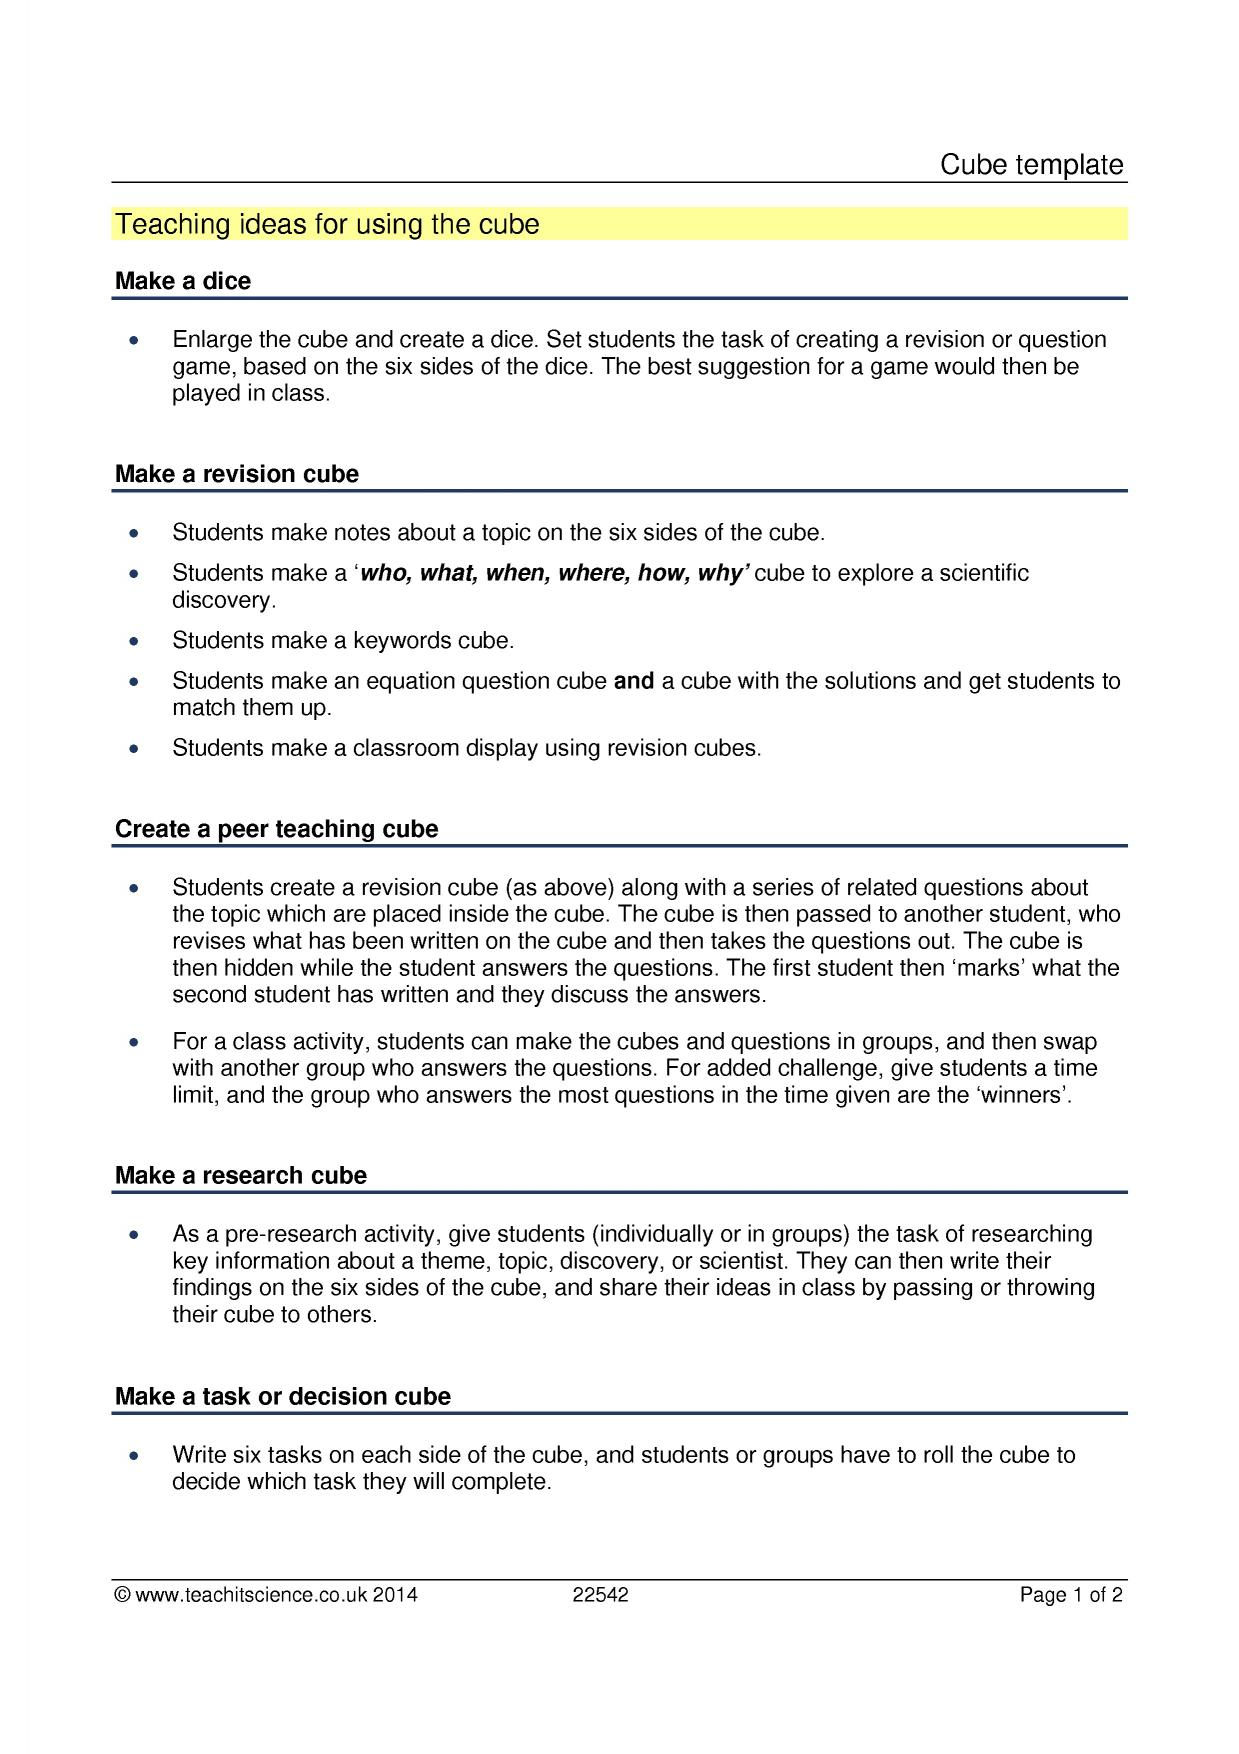 essay writing jobs online for freelance writers essays term   essay writing jobs online for freelance writers essays term papers uk x  india